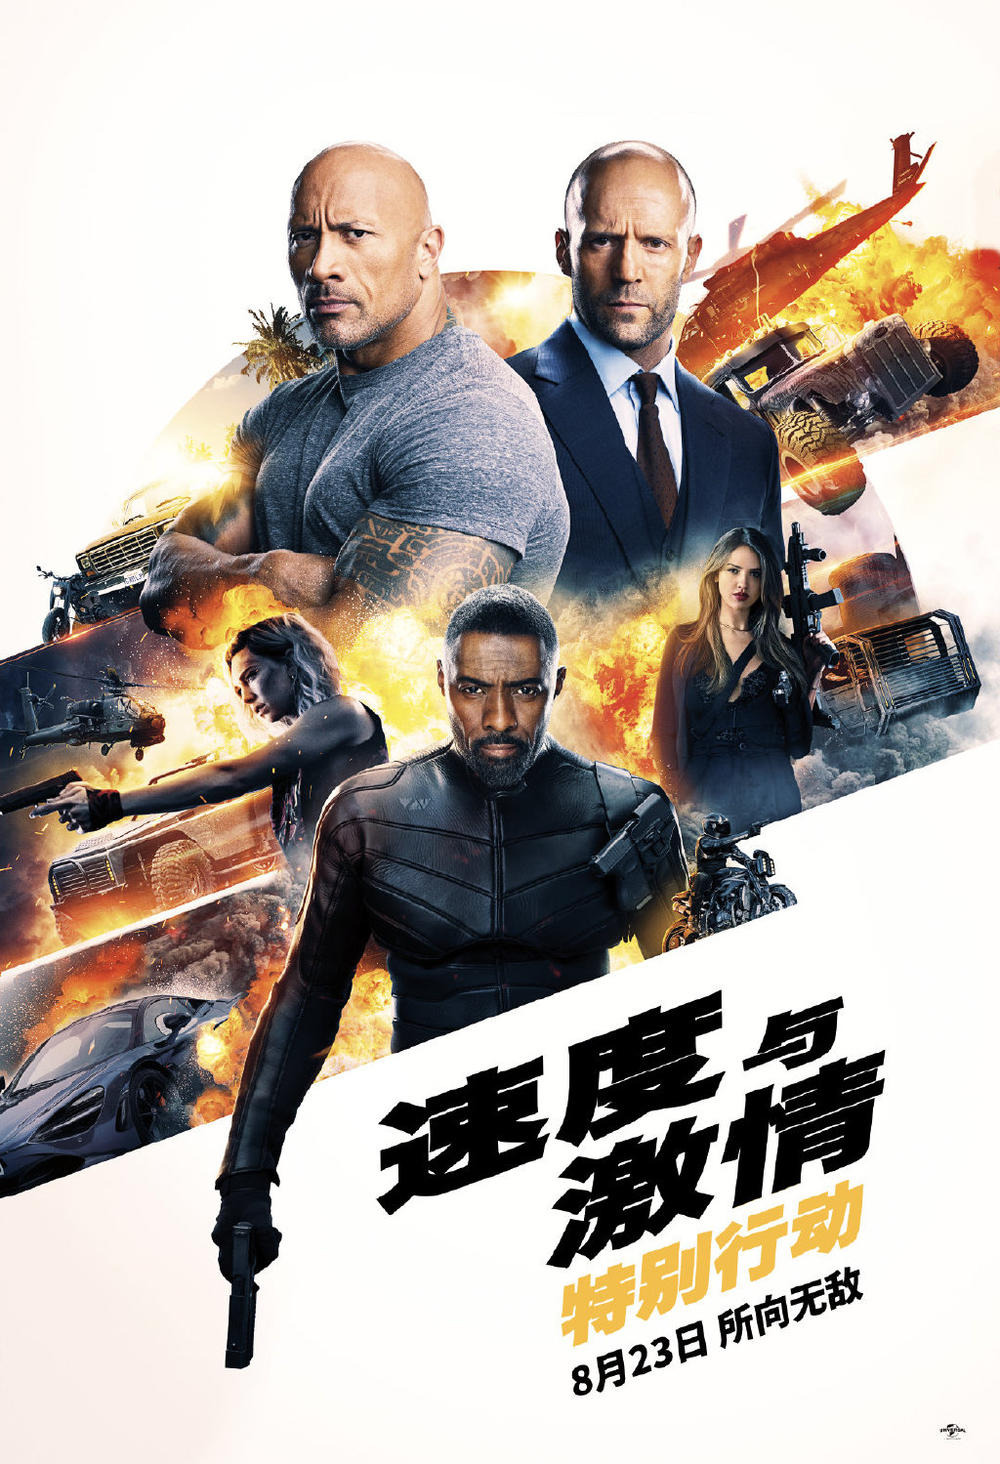 Extra Large Movie Poster Image for Hobbs & Shaw (#7 of 7)